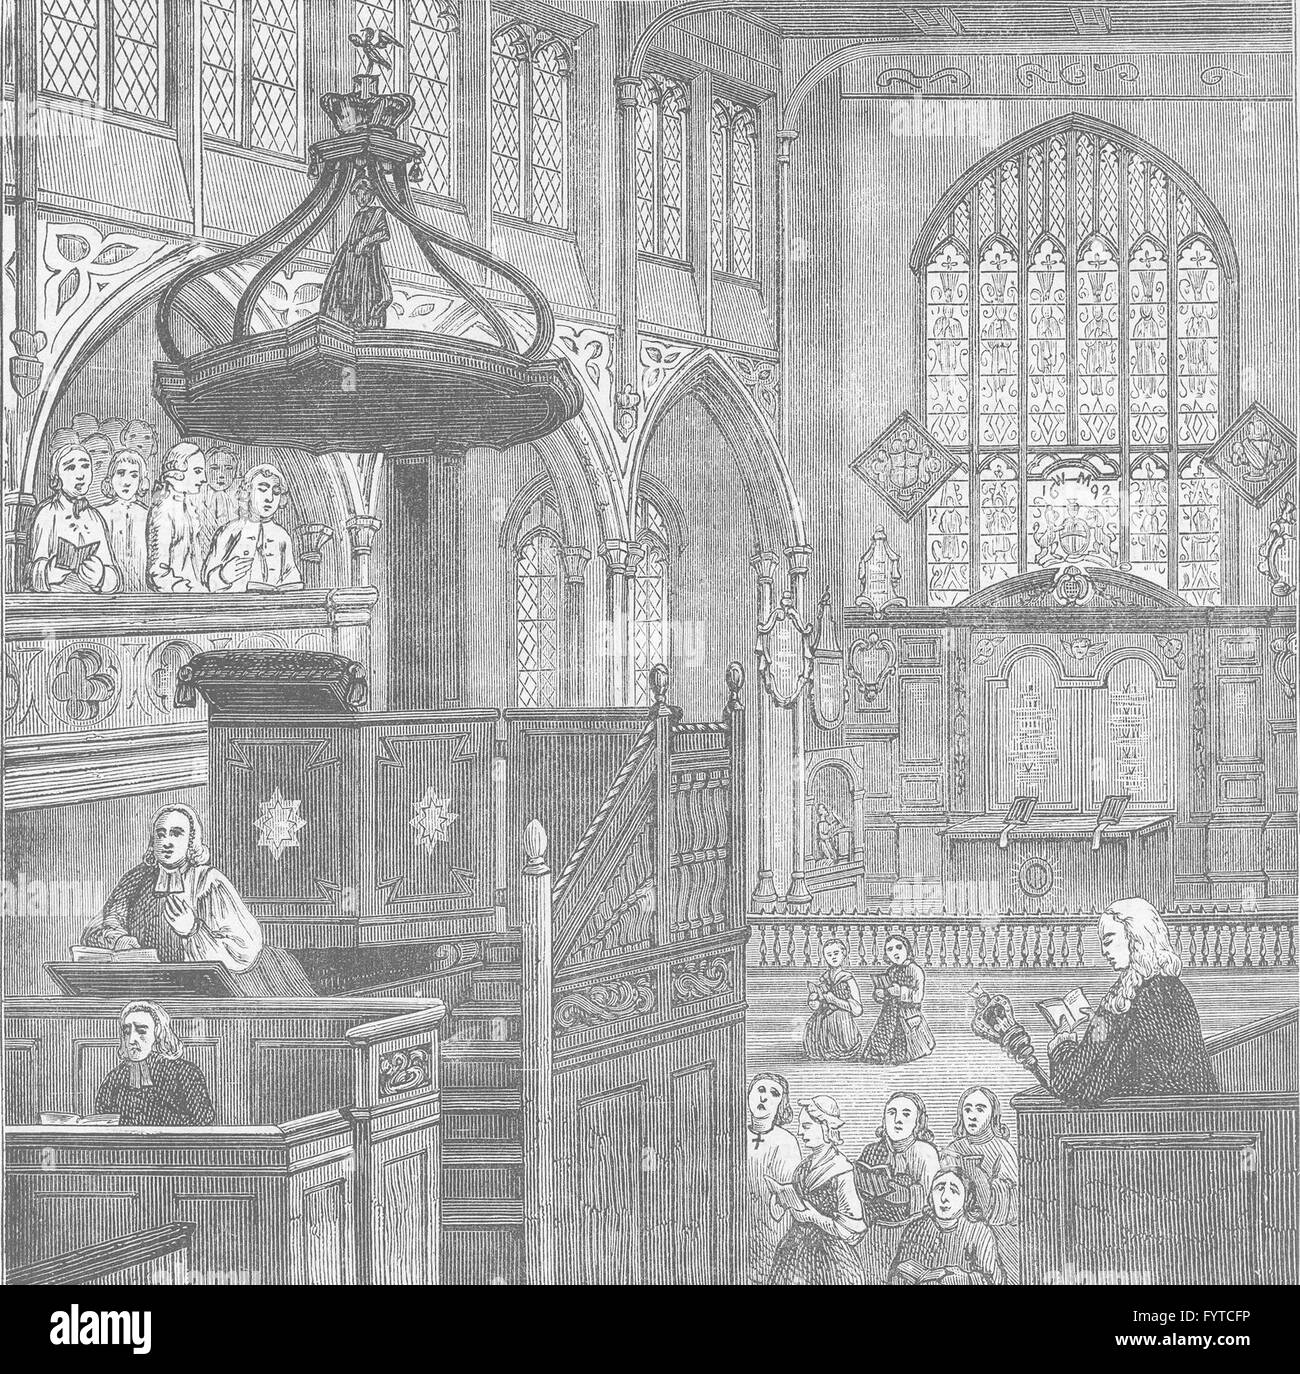 WESTMINSTER: Interior of St.Margaret's church in 1695. London, old print c1880 - Stock Image